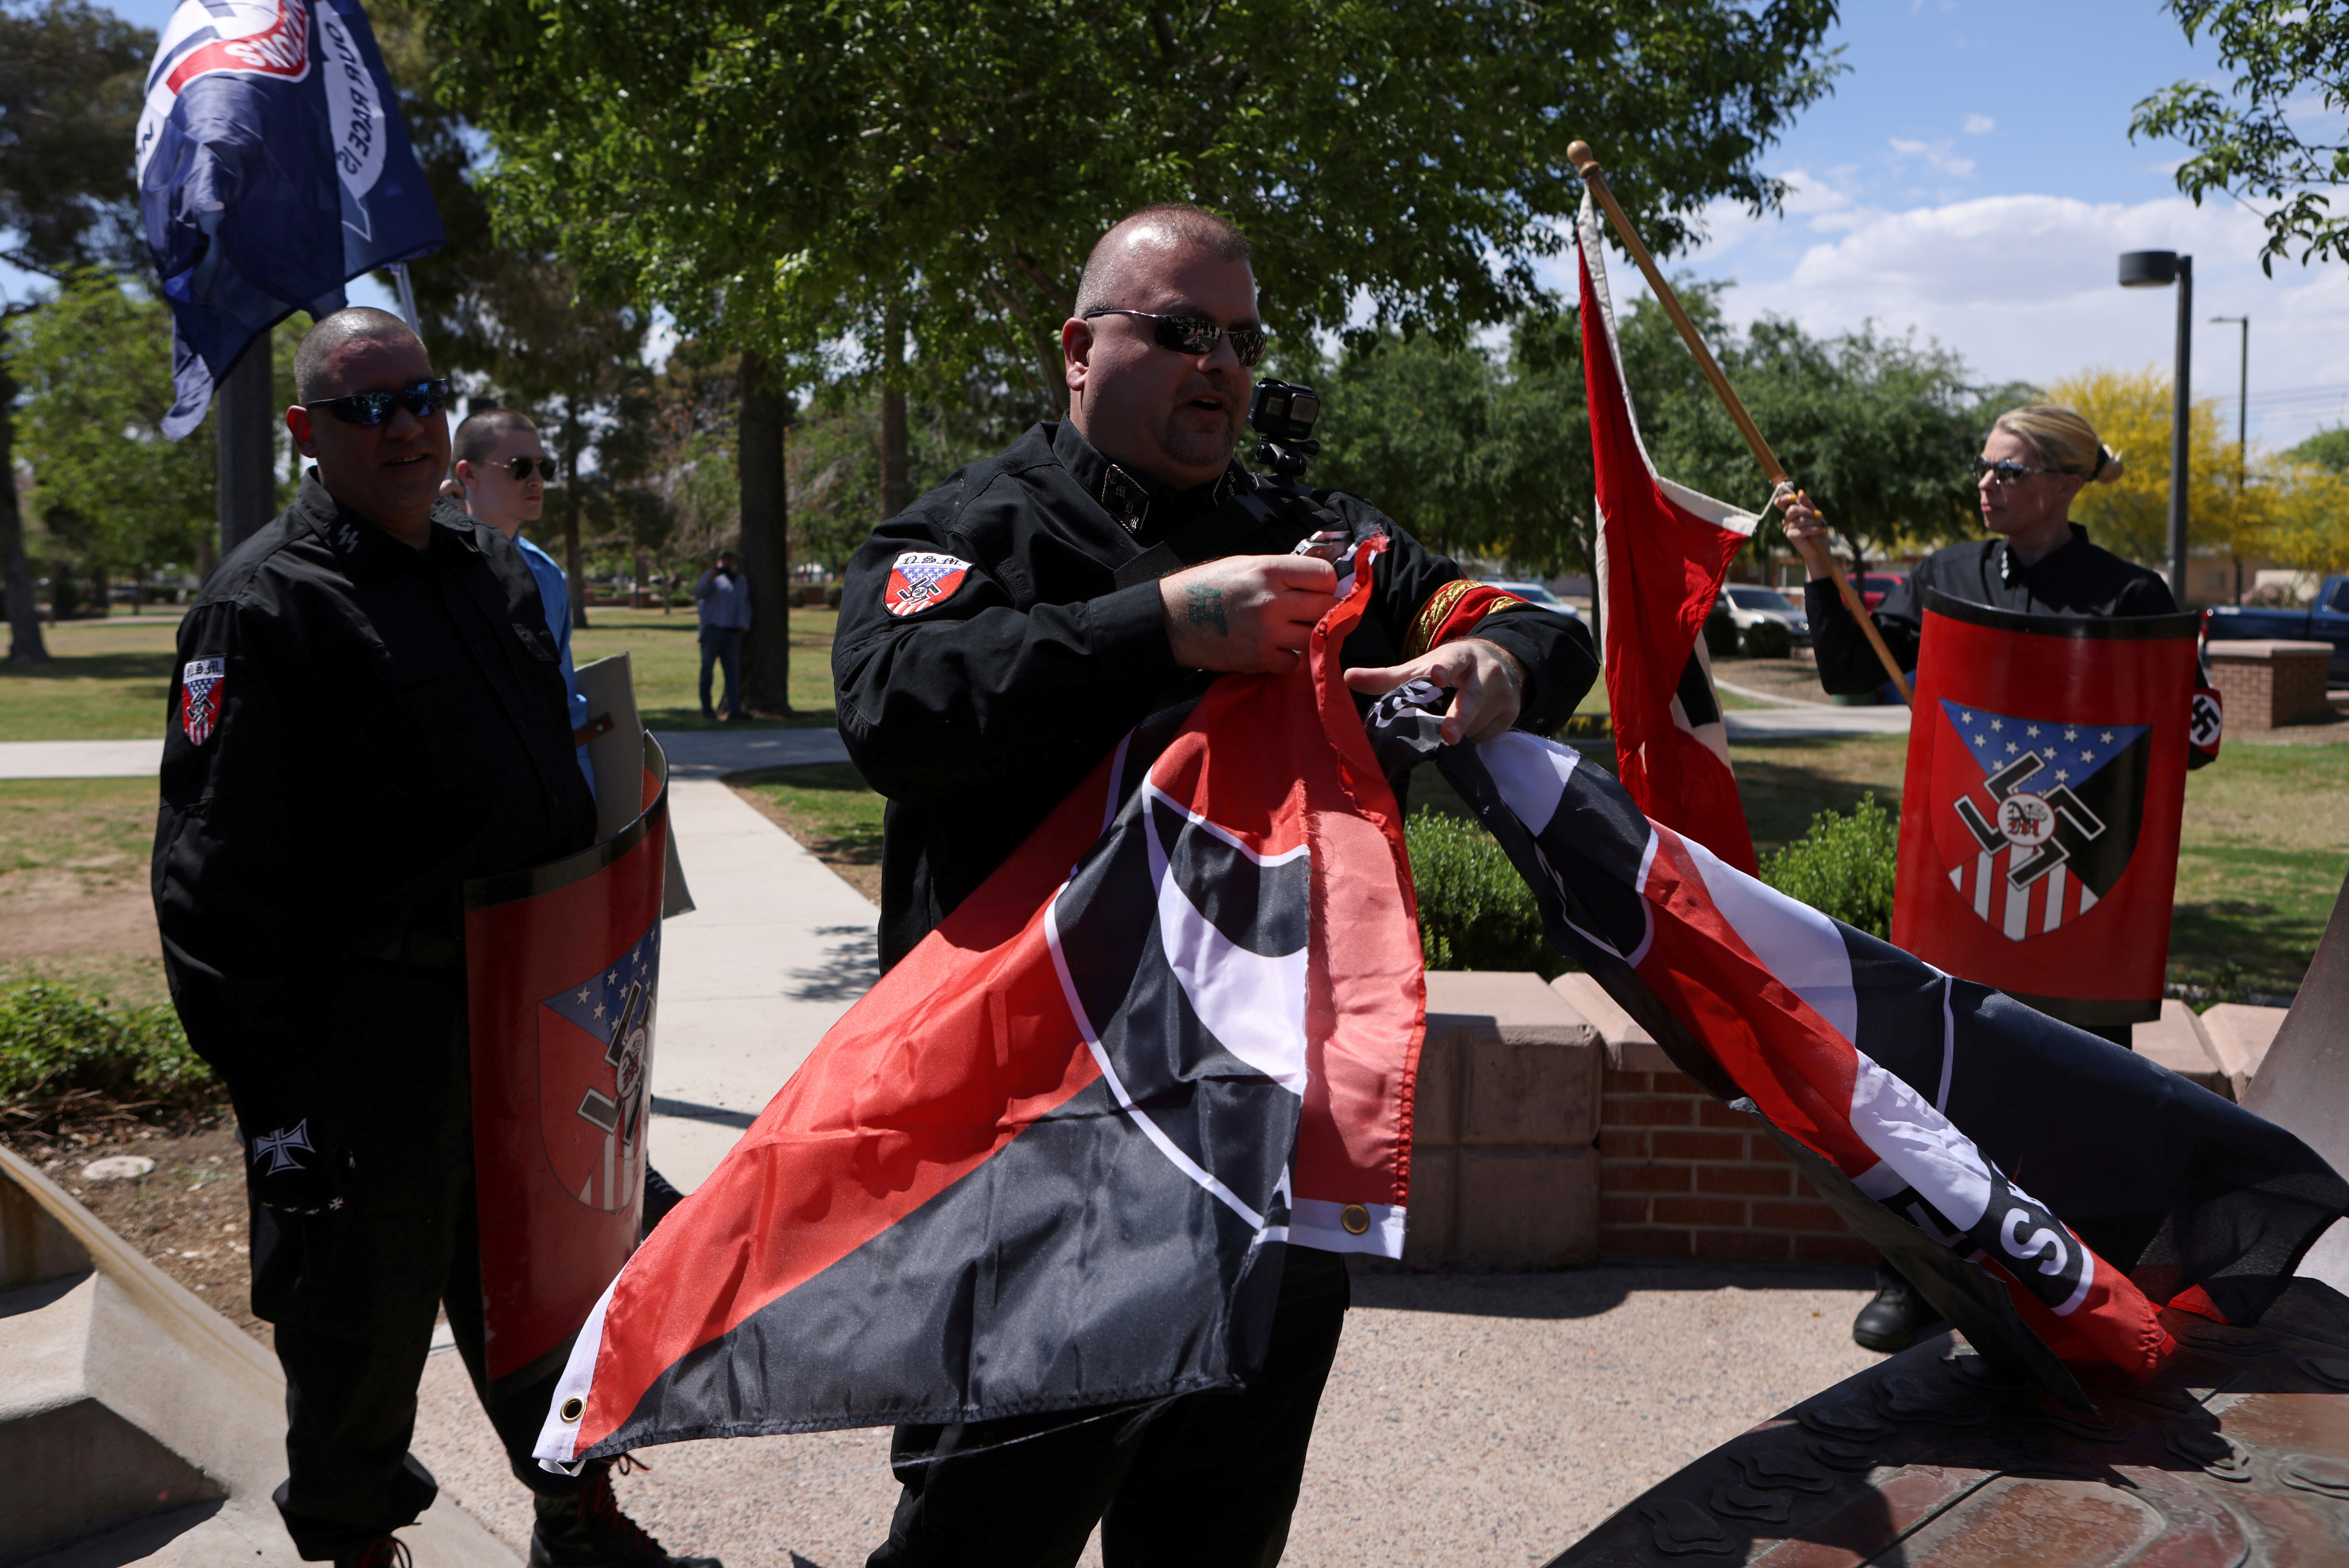 Burt Colucci of the white nationalist group National Socialist Movement destroys a flag of the anti-facist movement during a rally in Phoenix, Arizona, U.S., April 17, 2021. Picture taken April 17, 2021. REUTERS/Jim Urquhart/File Photo